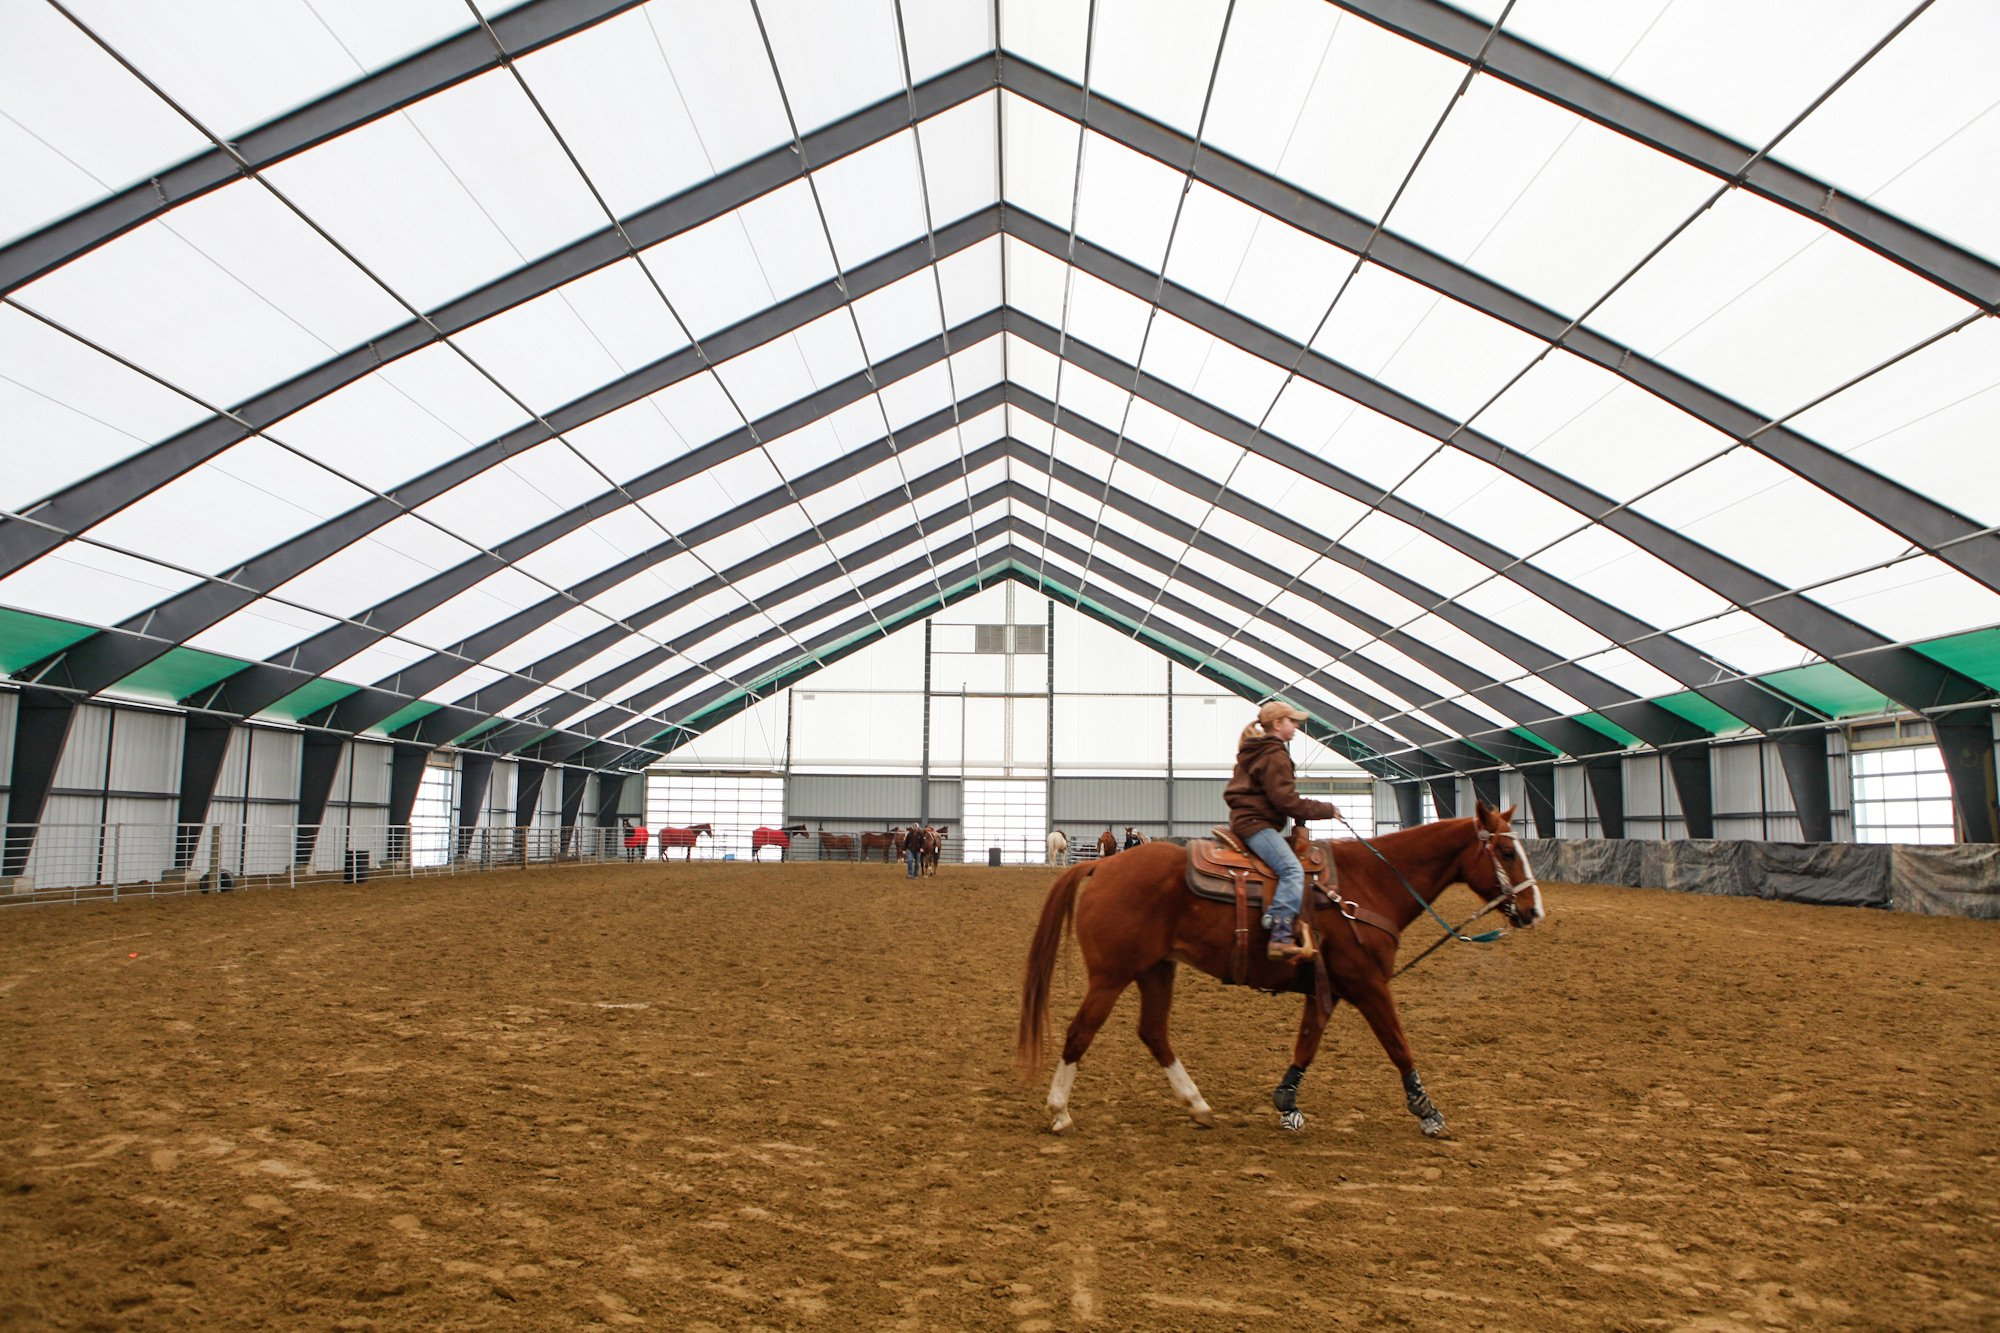 fabric equestrian arena with horse